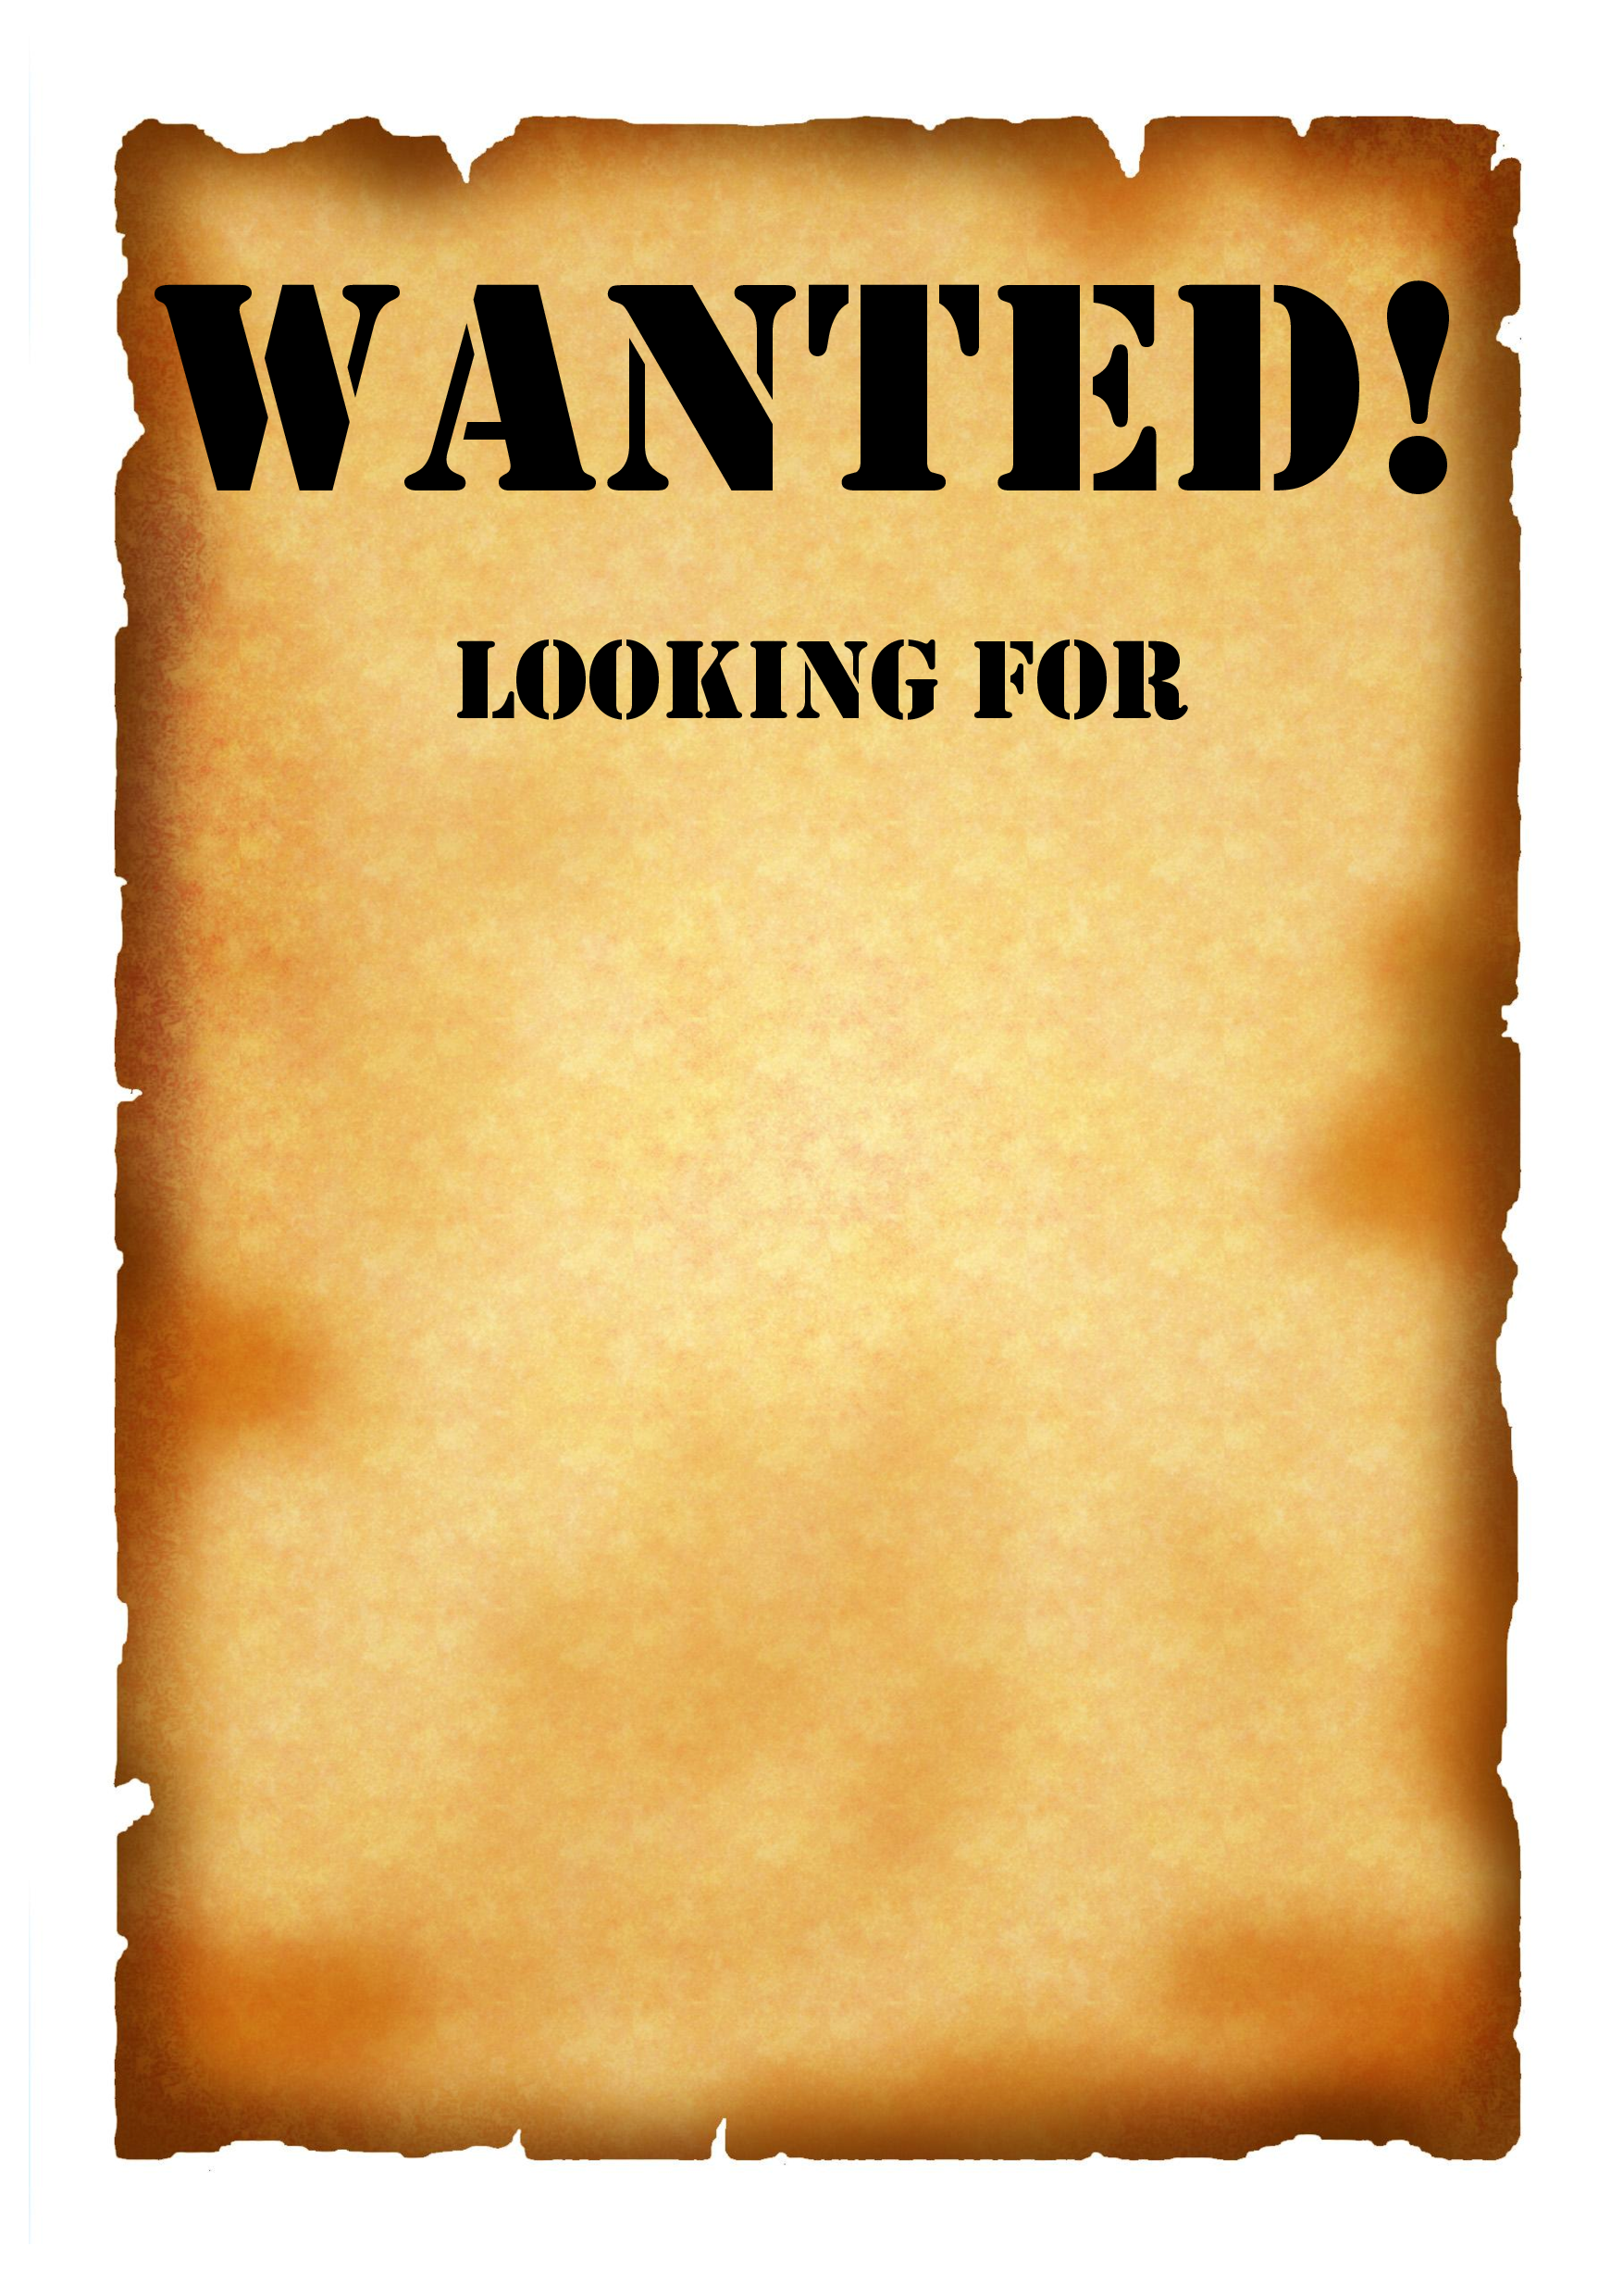 free wanted poster template - wanted wallpaper wallpapersafari